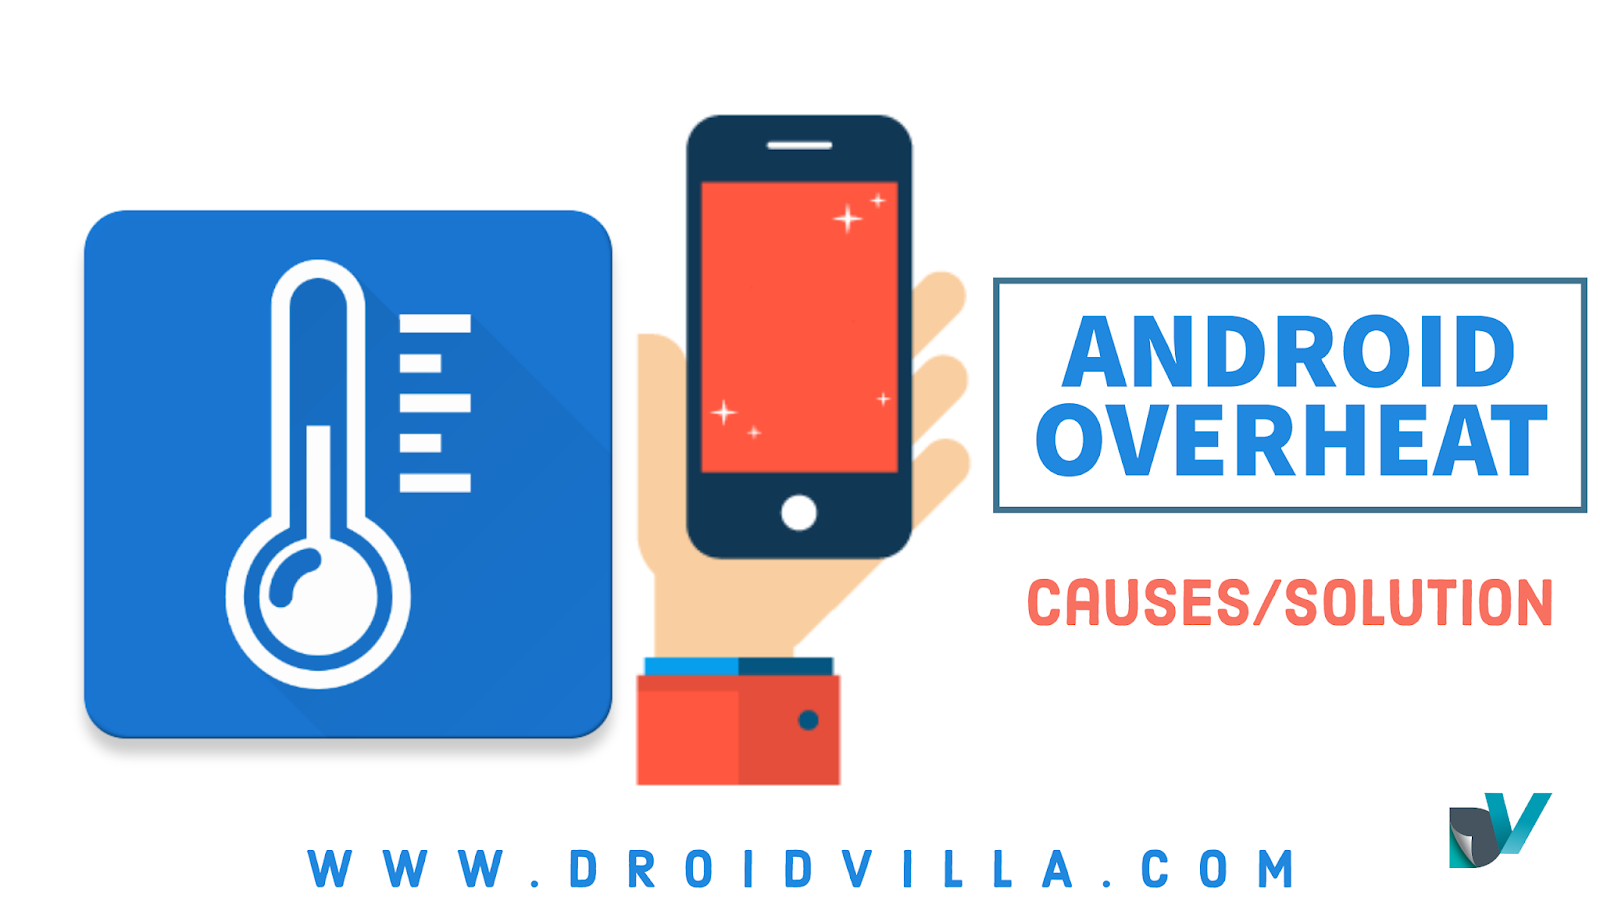 Android overheat: causes and solutions